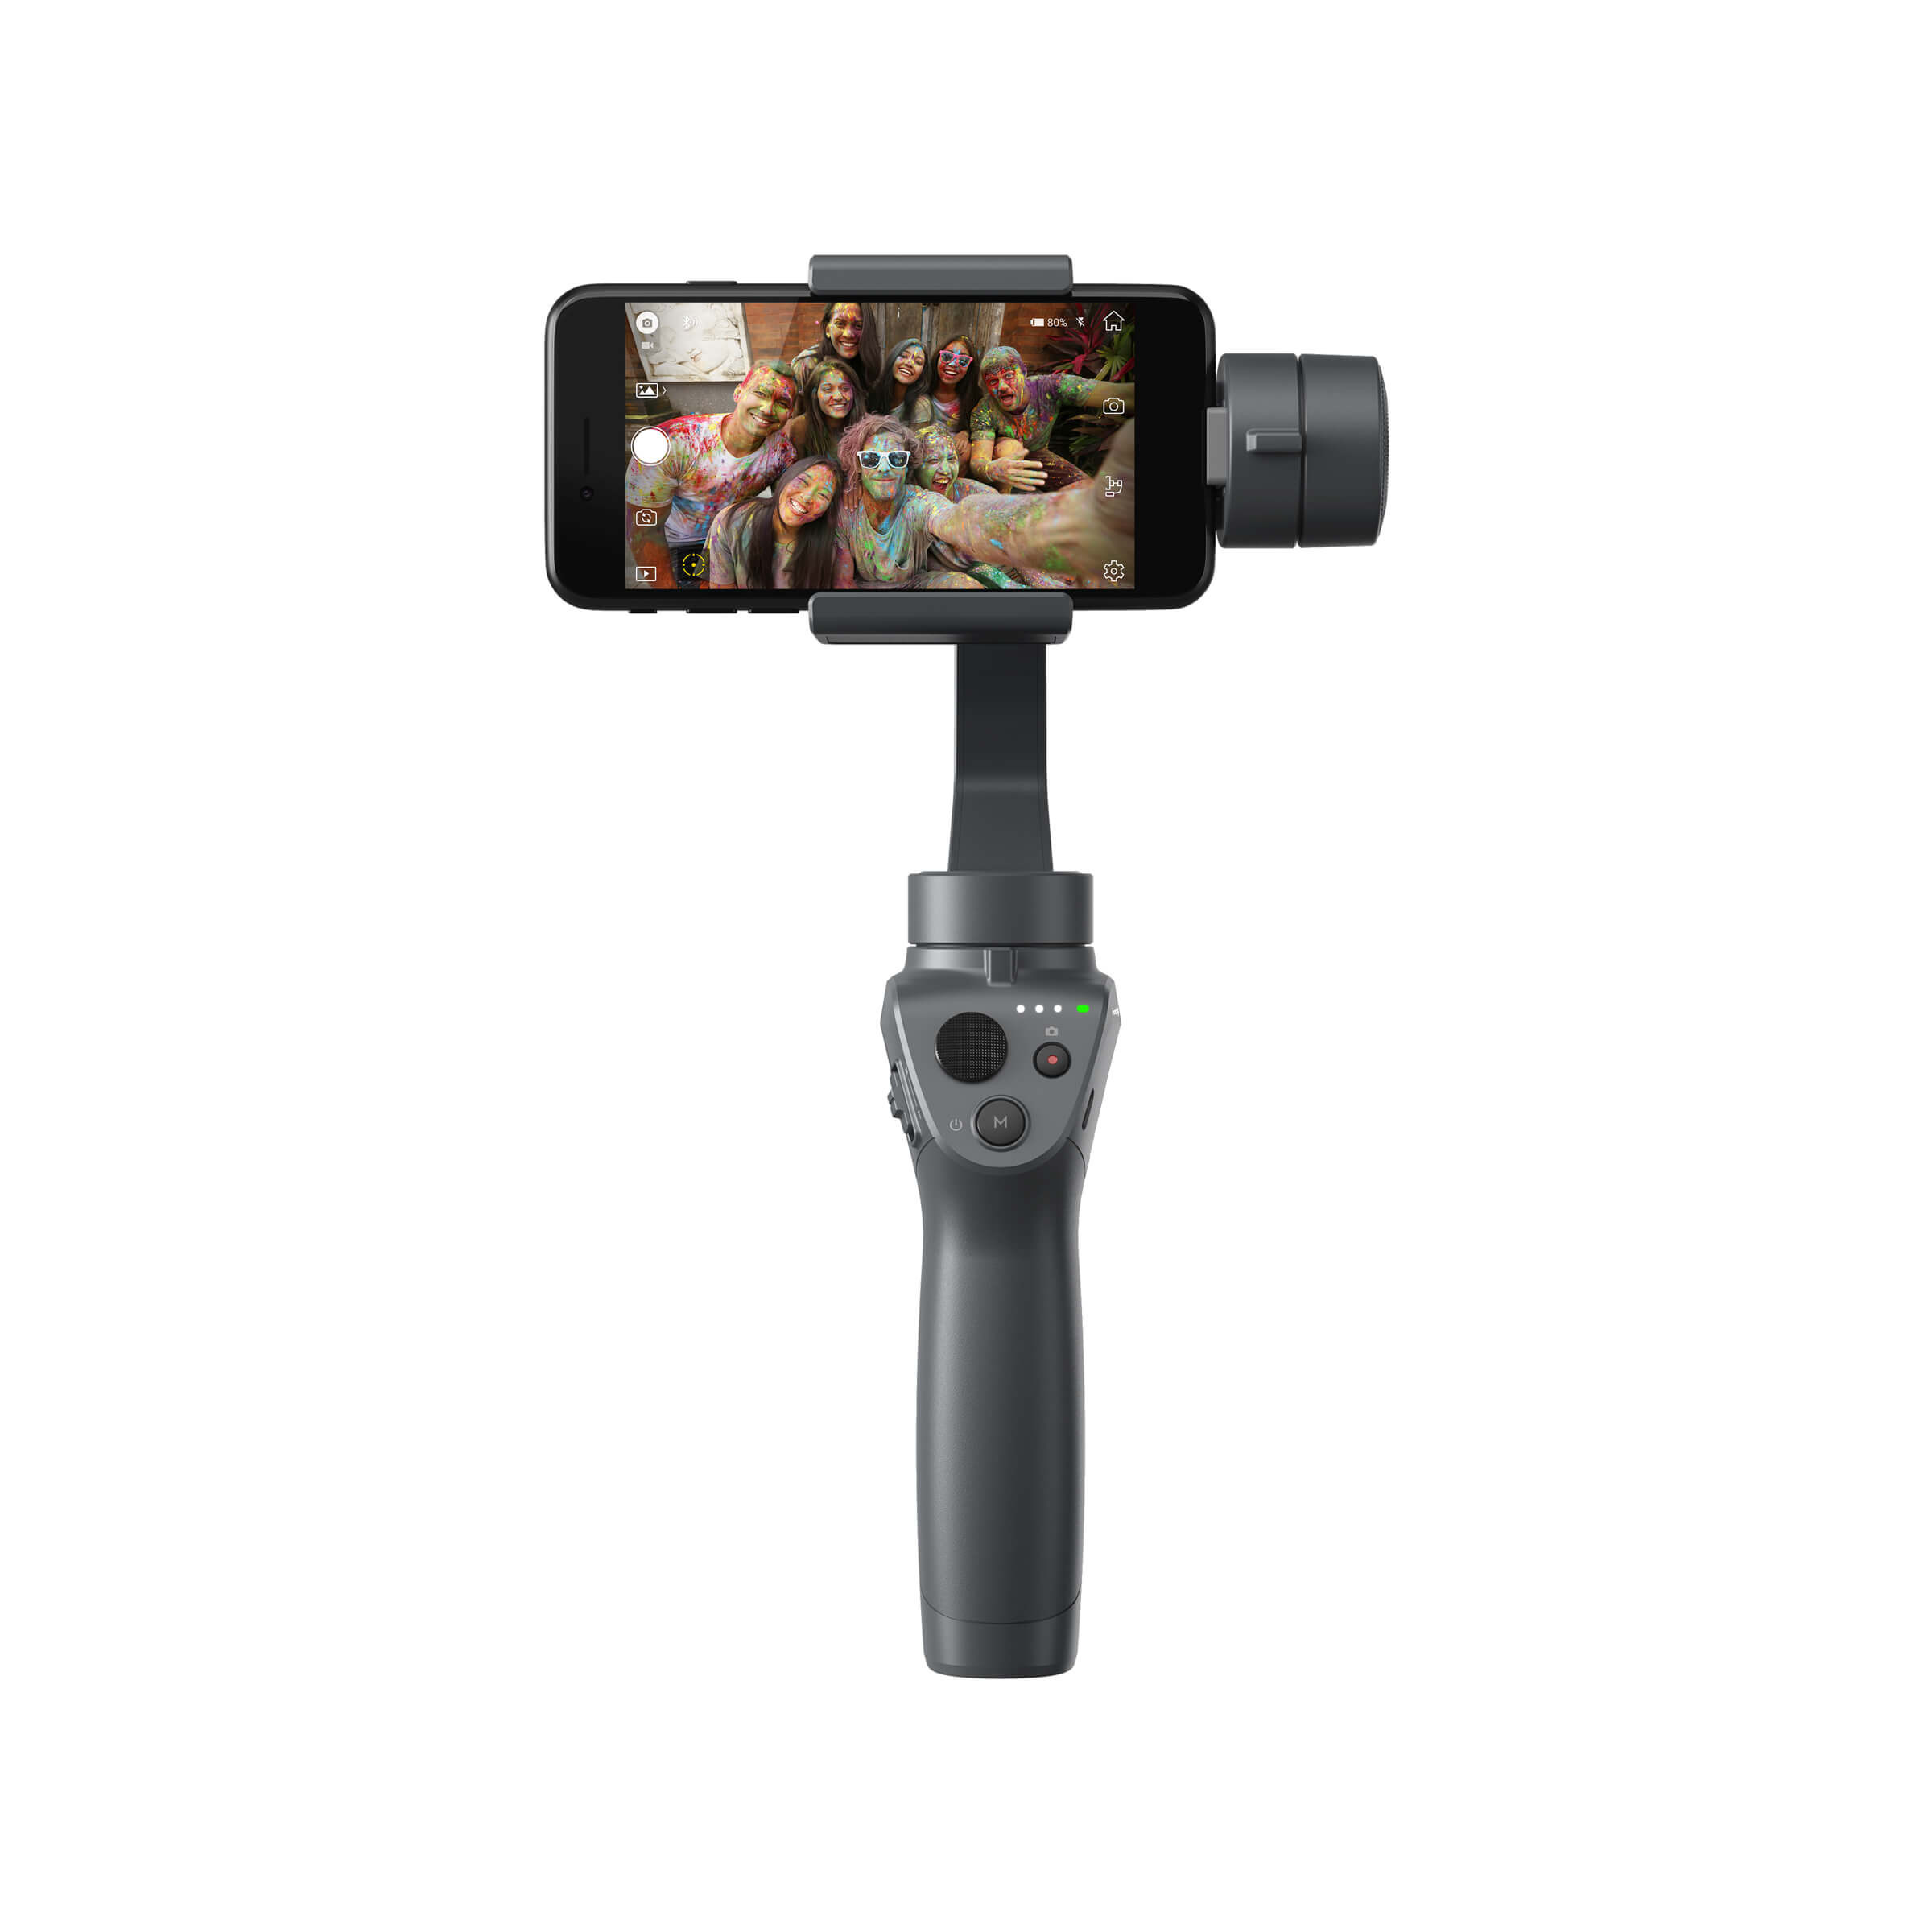 Buy Dji Osmo Mobile 2 Handheld Smartphone Gimbal Dji Refurbished Today At Dronenerds Cp Zm 00000064 02 E